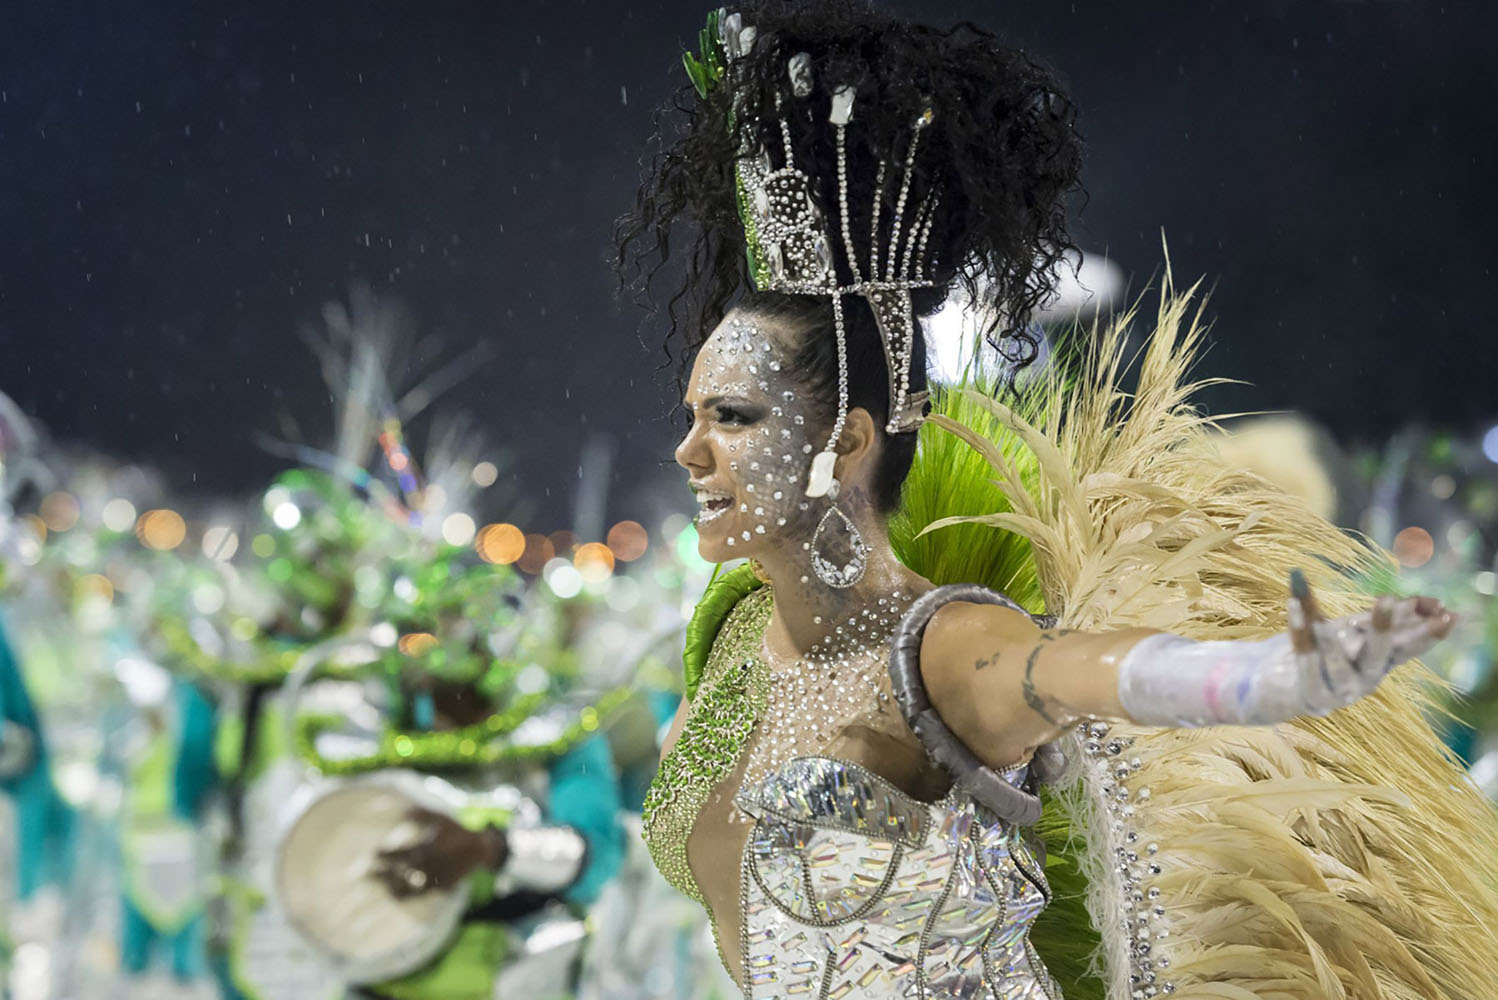 A young woman in costume at the Brazilian carnival